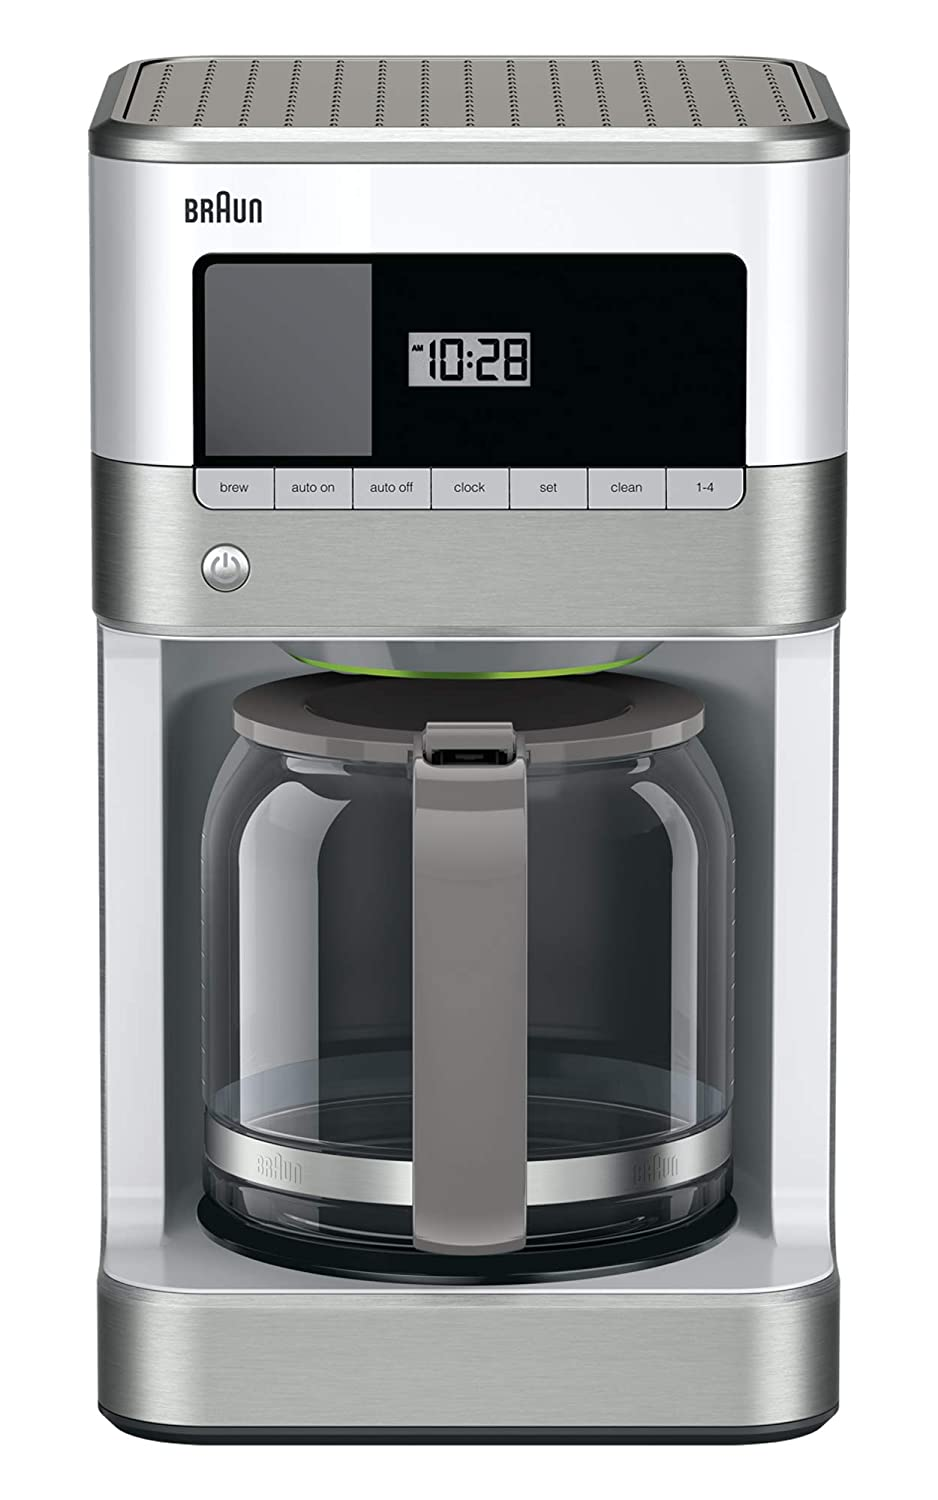 Braun KF6050WH Brewsense Drip Coffee Maker, 12-Cup white